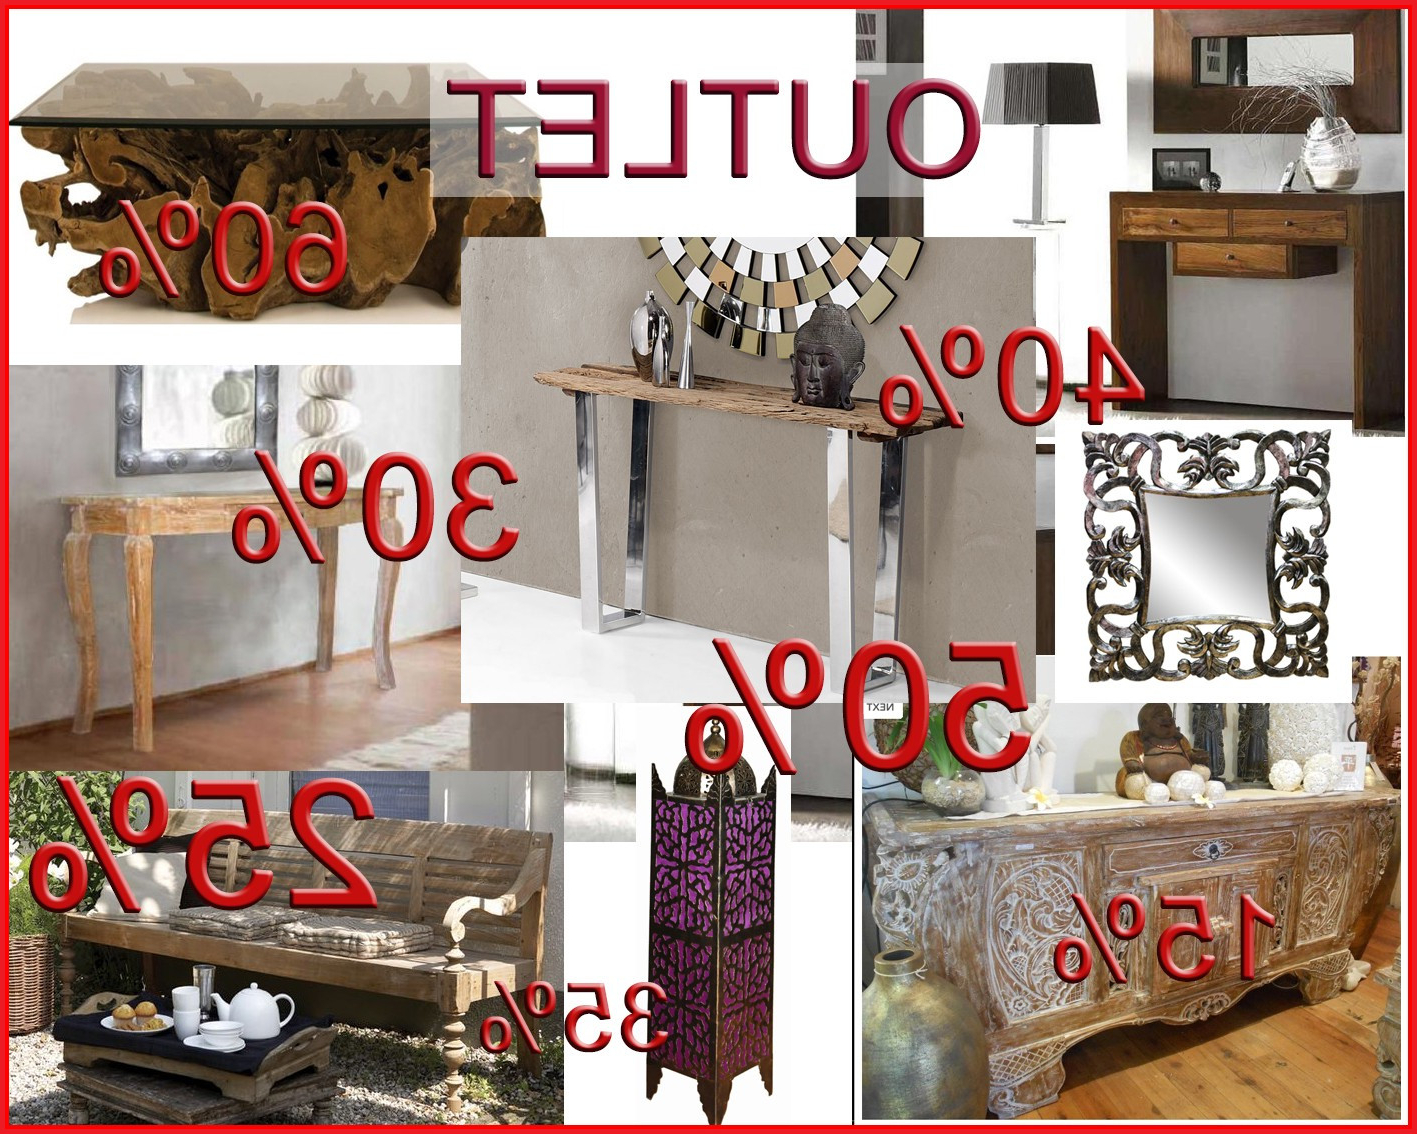 Muebles Baño Barcelona Outlet Bqdd Muebles Archives Page 35 Of 518 Arsenalsupremo